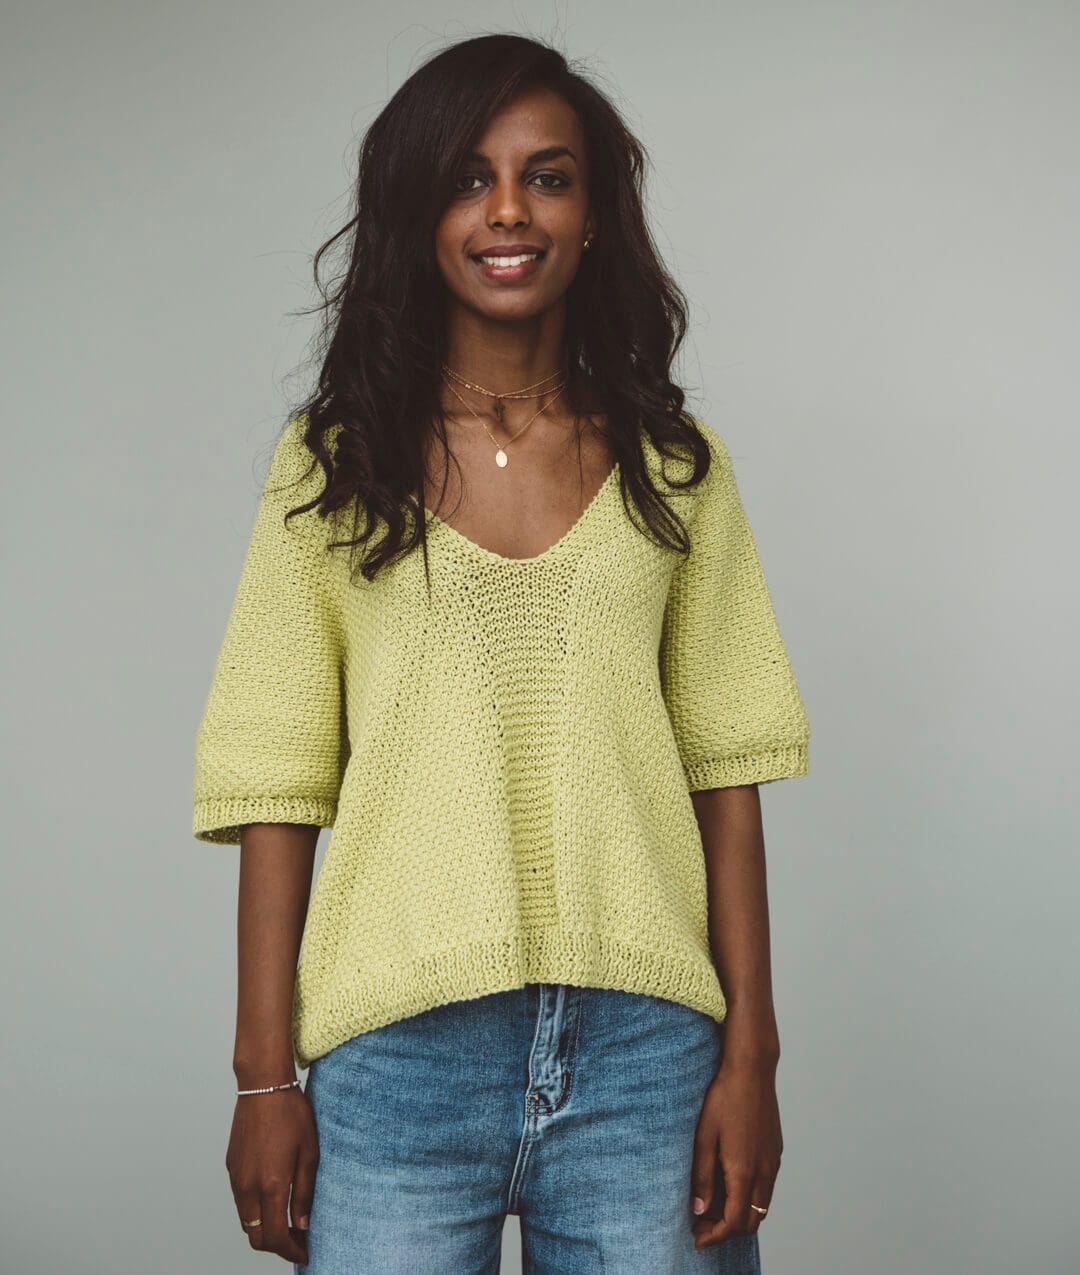 Sweaters and Tops - Cotton - PEGGY TOP - 1